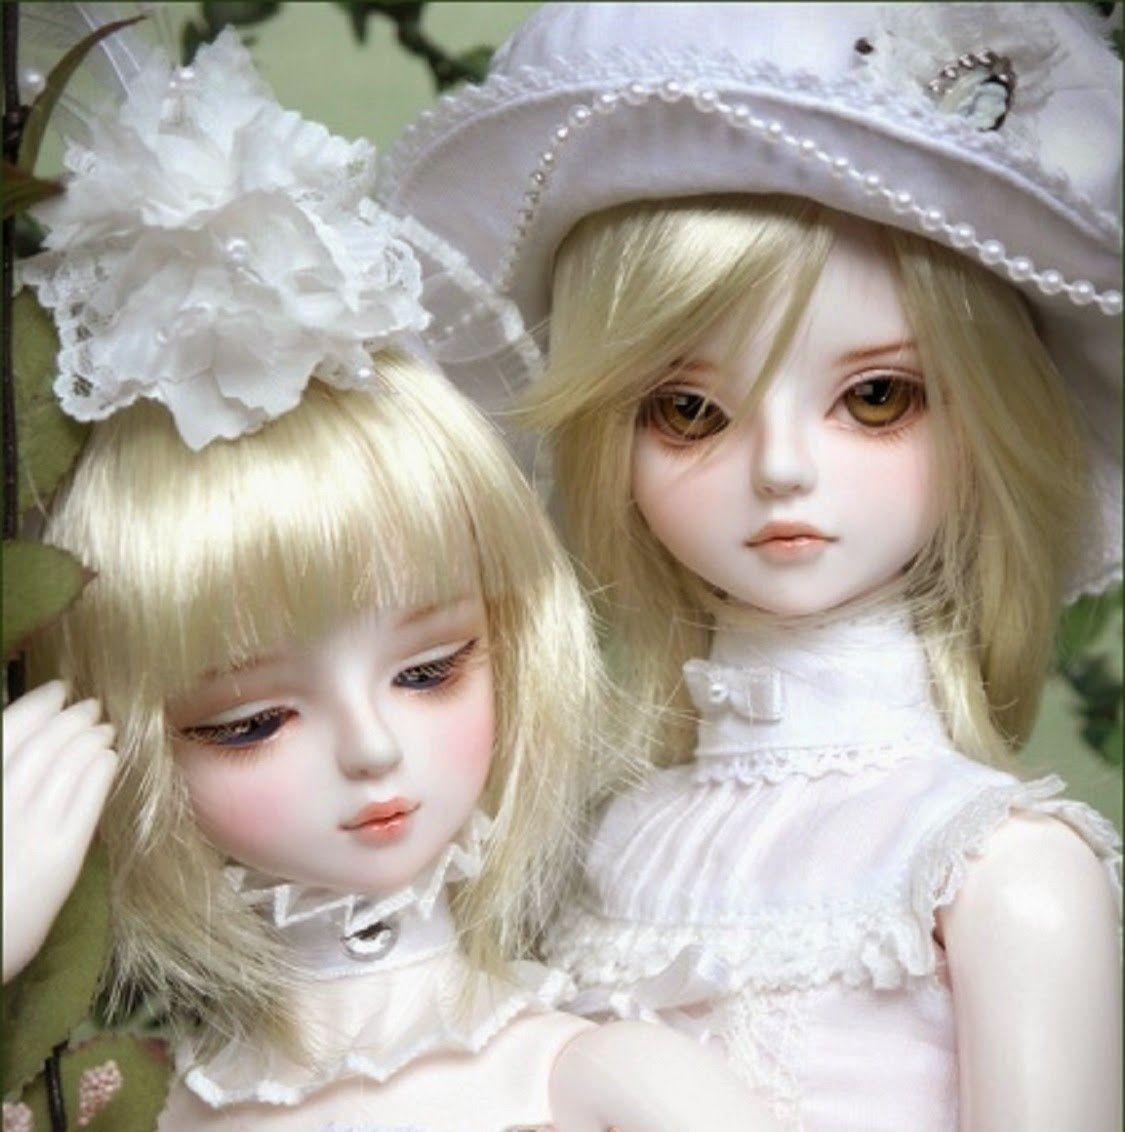 Stylish Cute Dolls Wallpapers For Facebook Wallpaper Cave